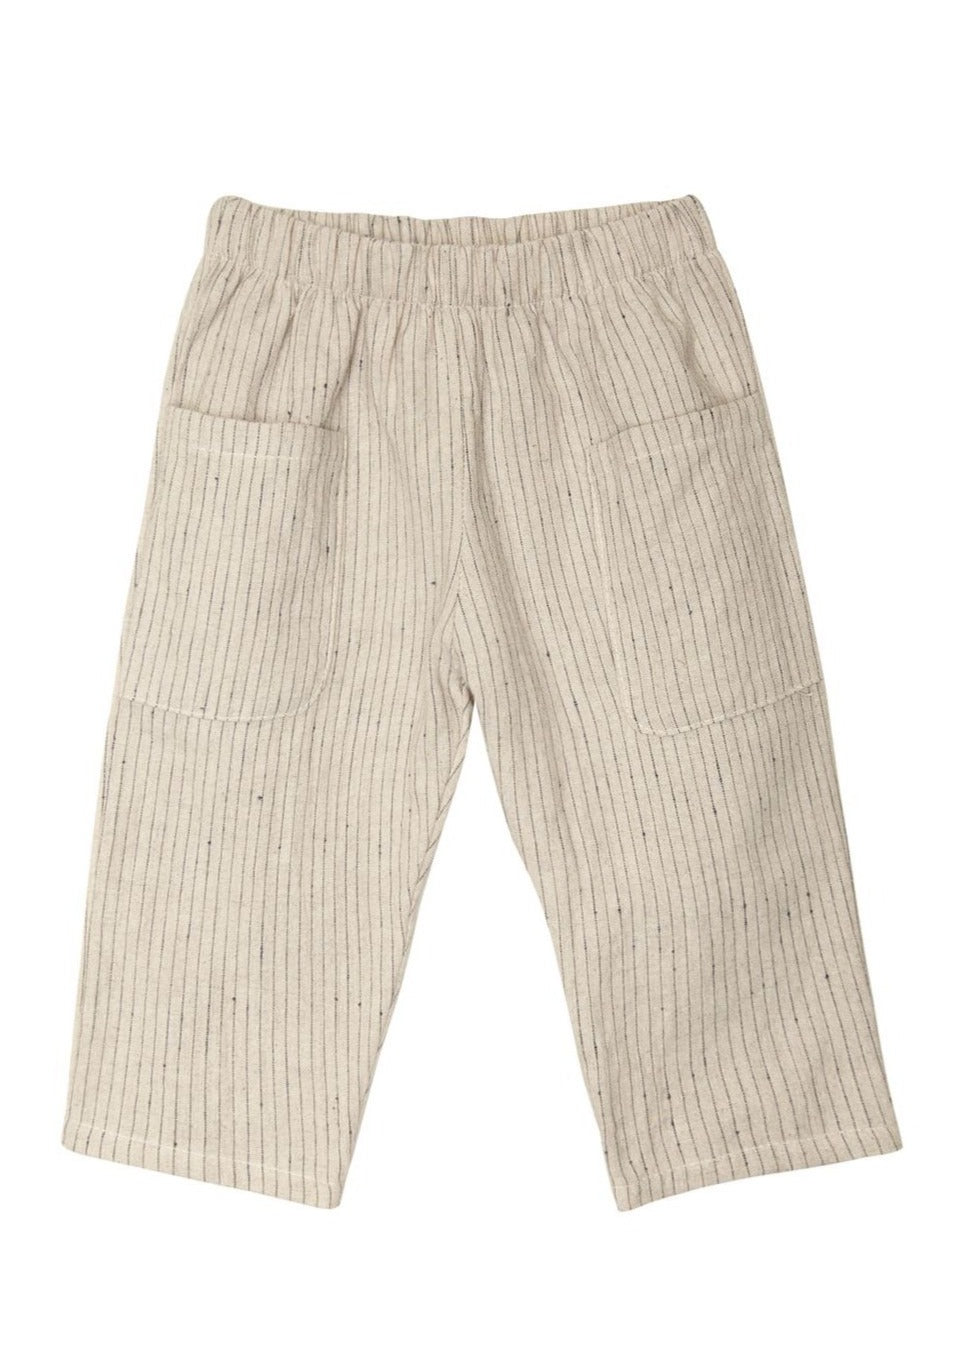 go gently nation woven pocket pant flax with navy stripe